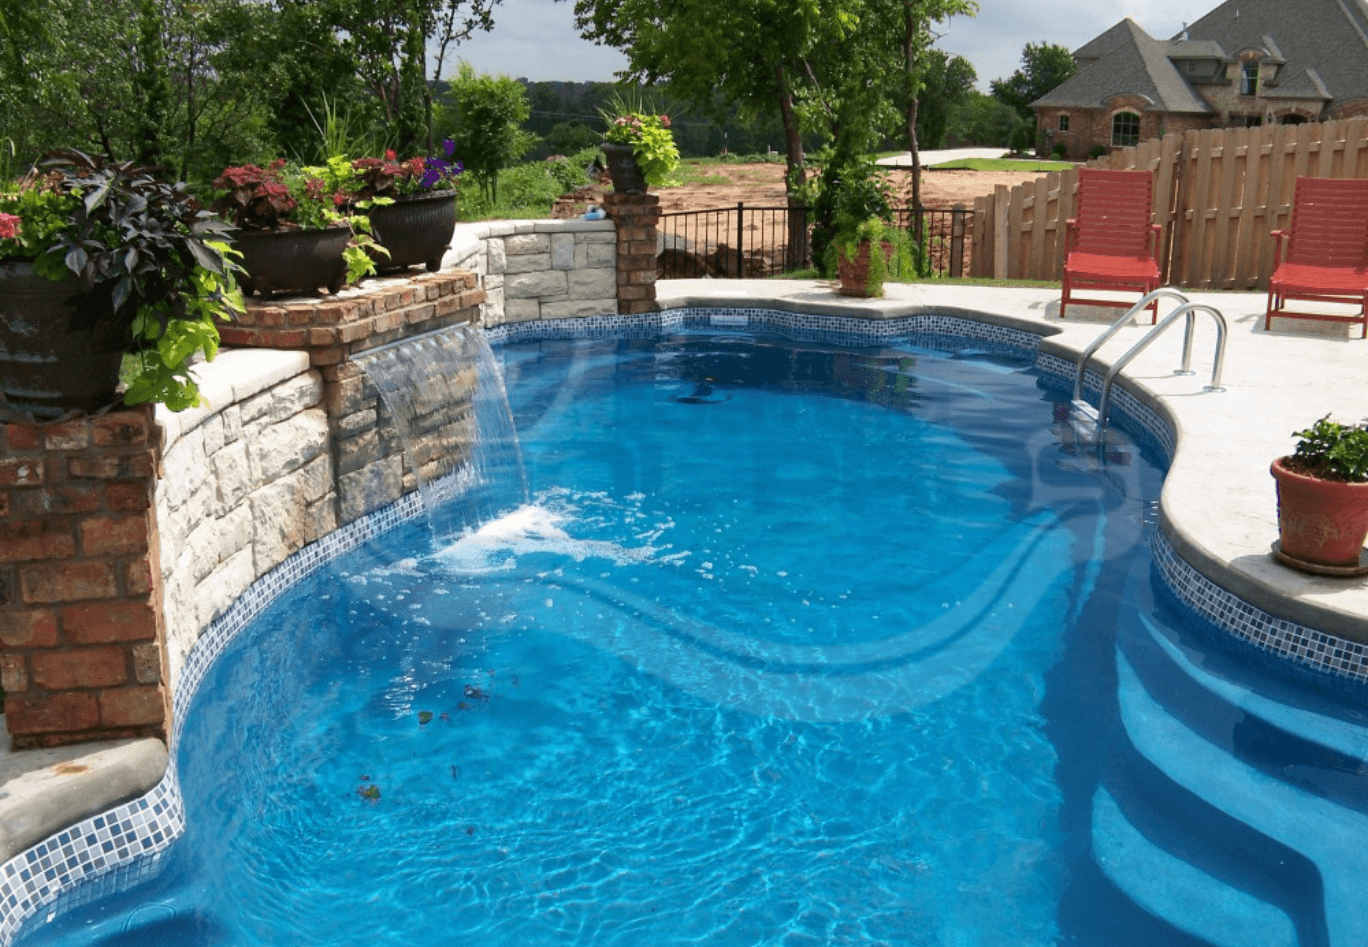 Professionally Installed Pool